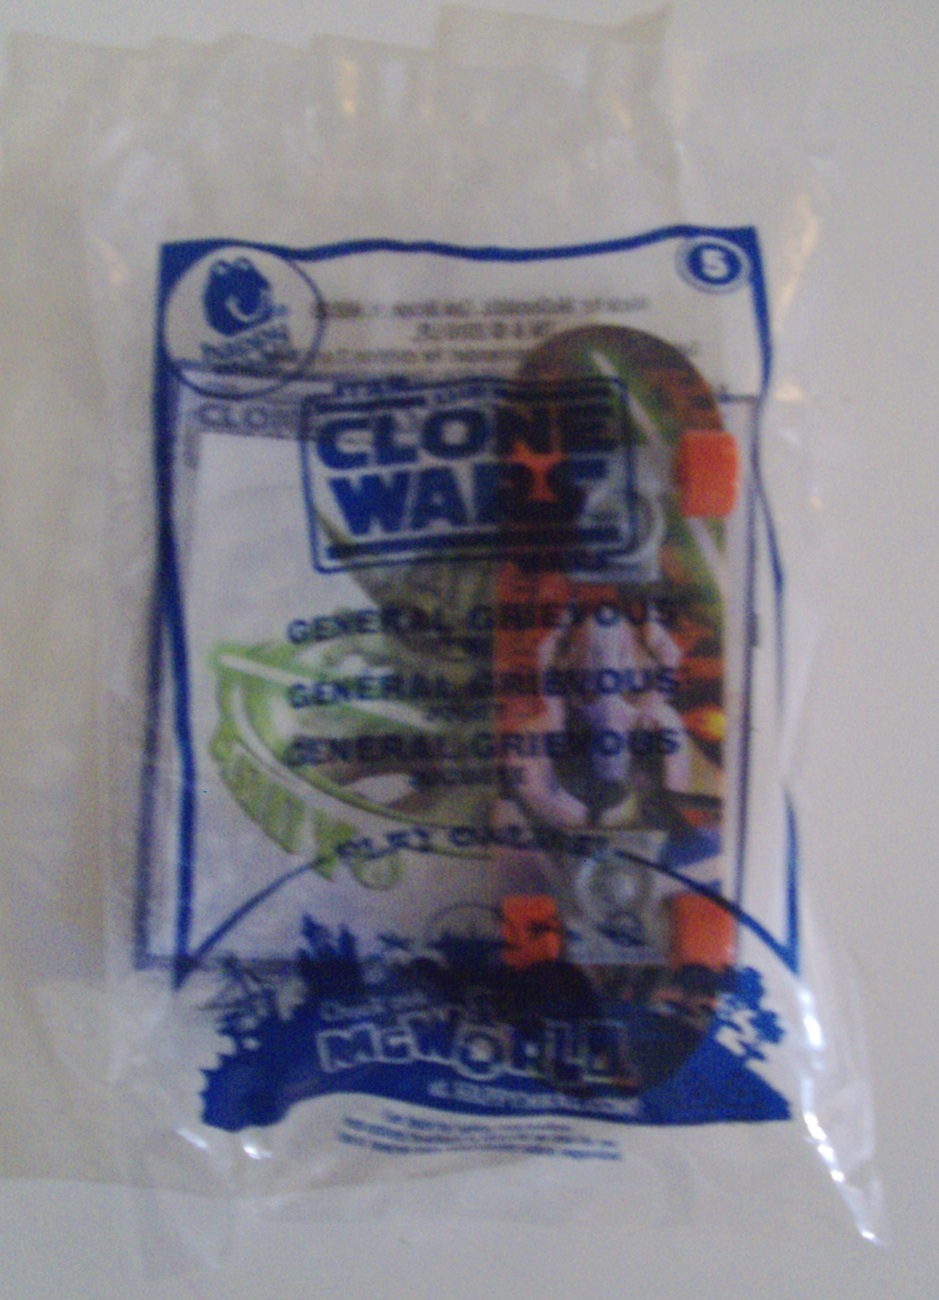 Star Wars the Clone Wars General Grievous & Asajj Ventress McDonald's toys - New